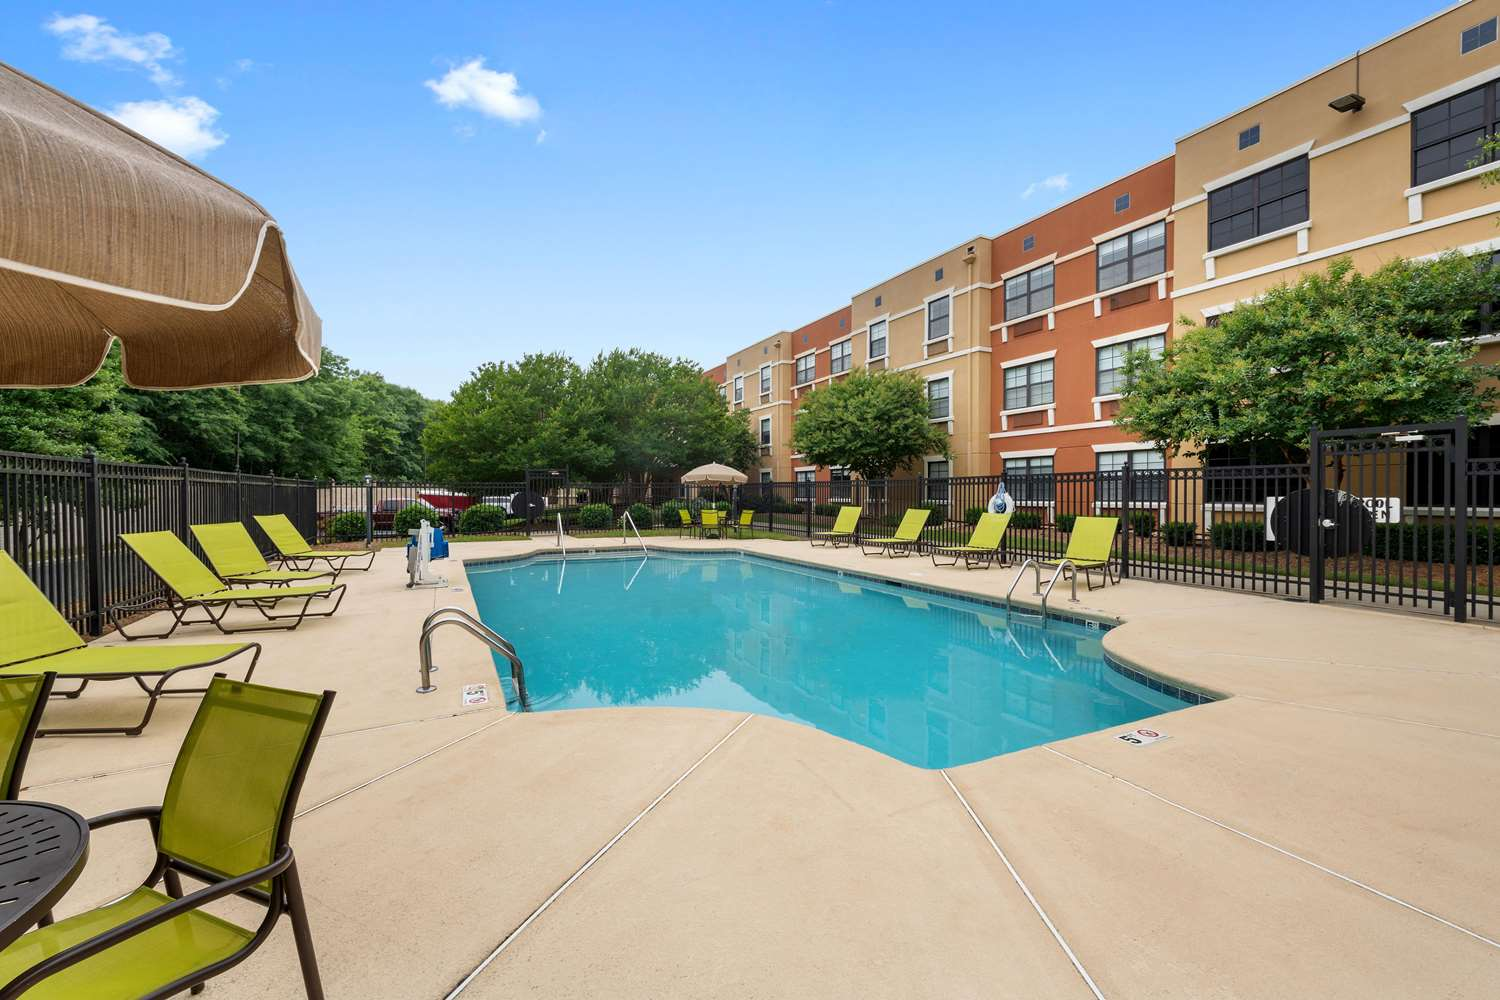 Pool - Extended Stay America Hotel Pineville-Matthews Rd Charlotte